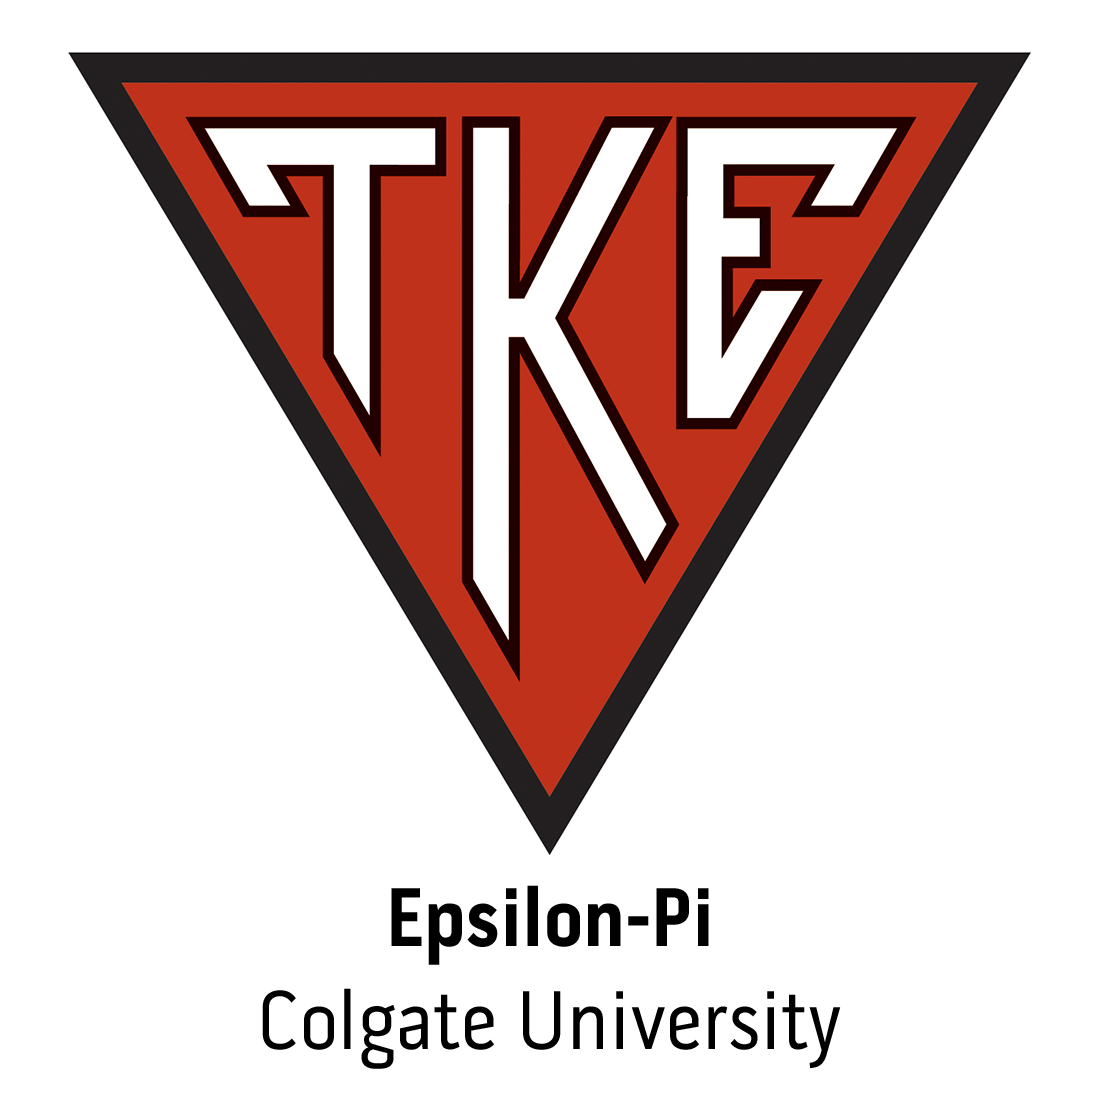 Epsilon-Pi Chapter at Colgate University